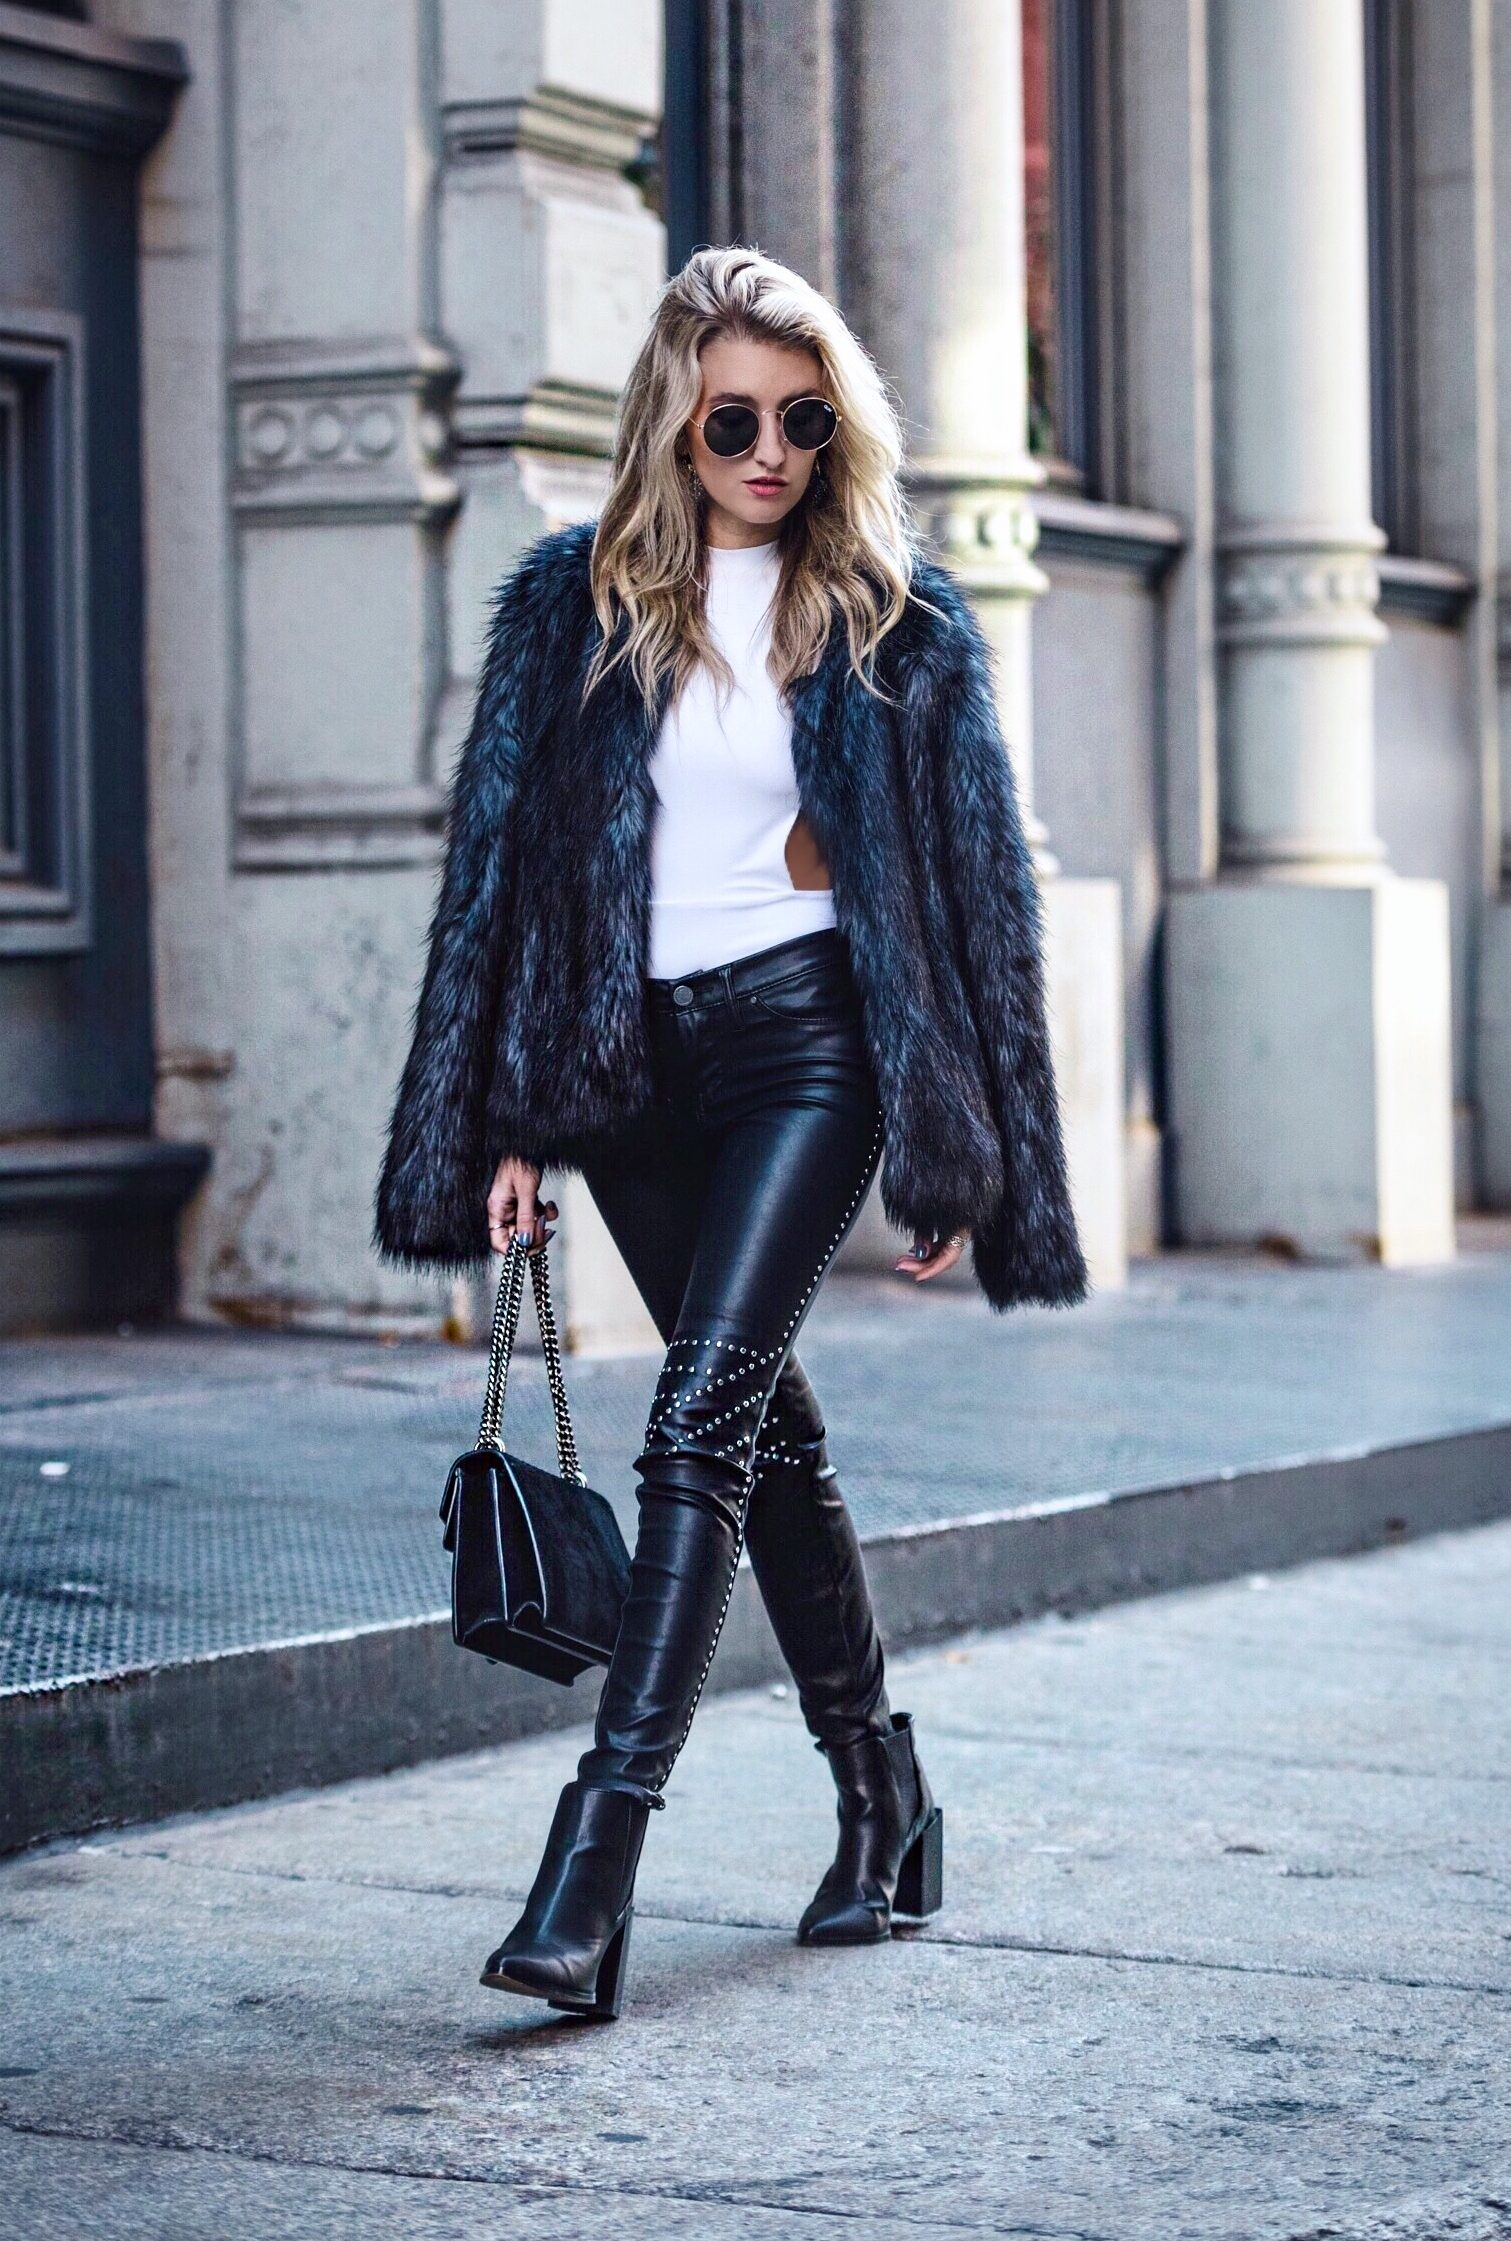 faux leather studded pants and fur coat